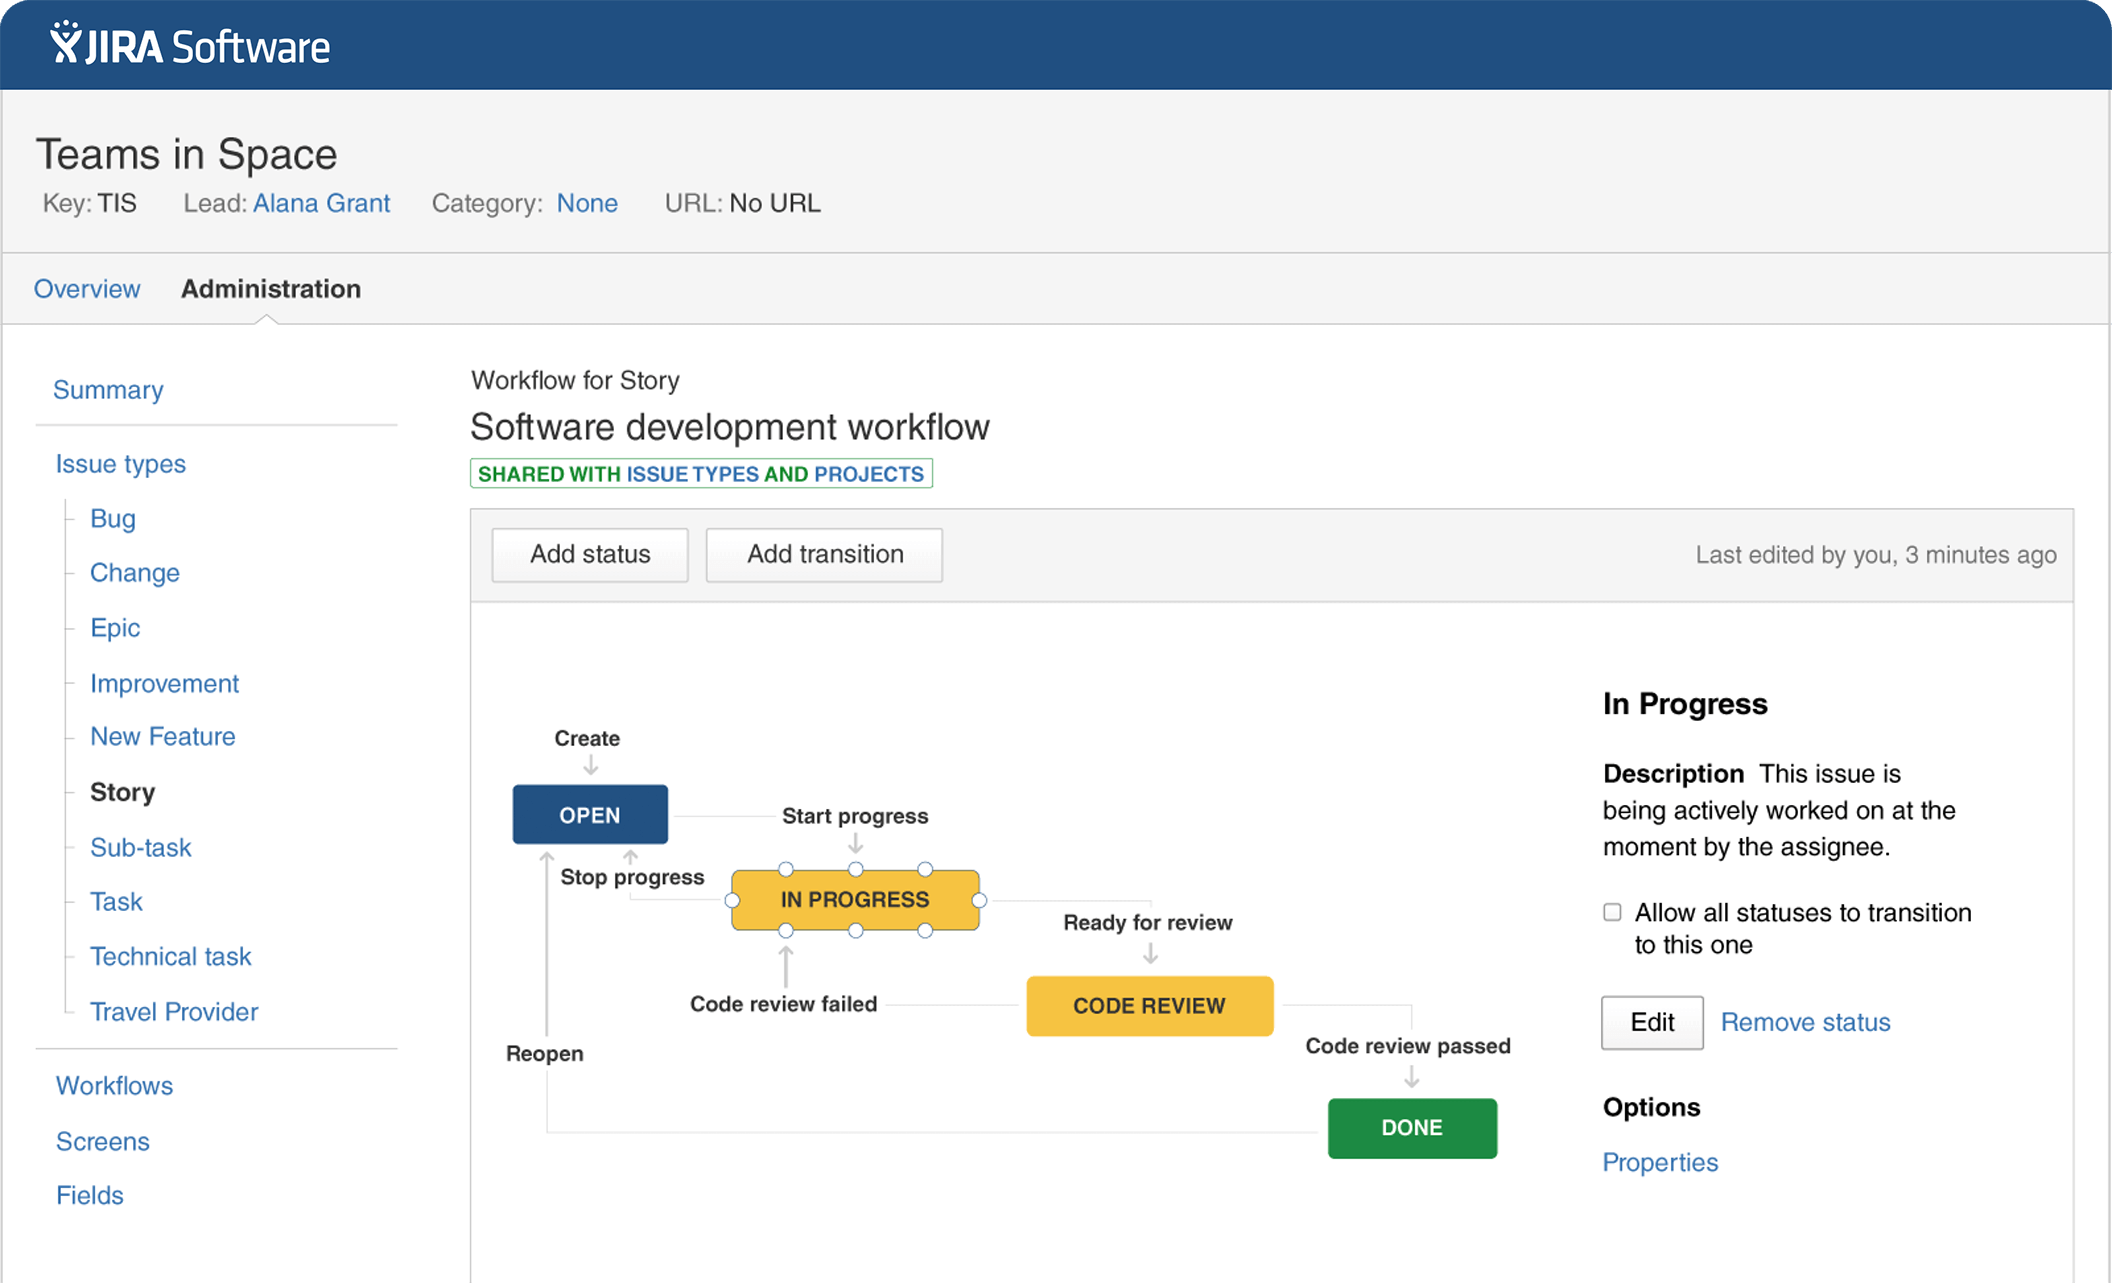 outil-gestion-projet-jira-software-workflow